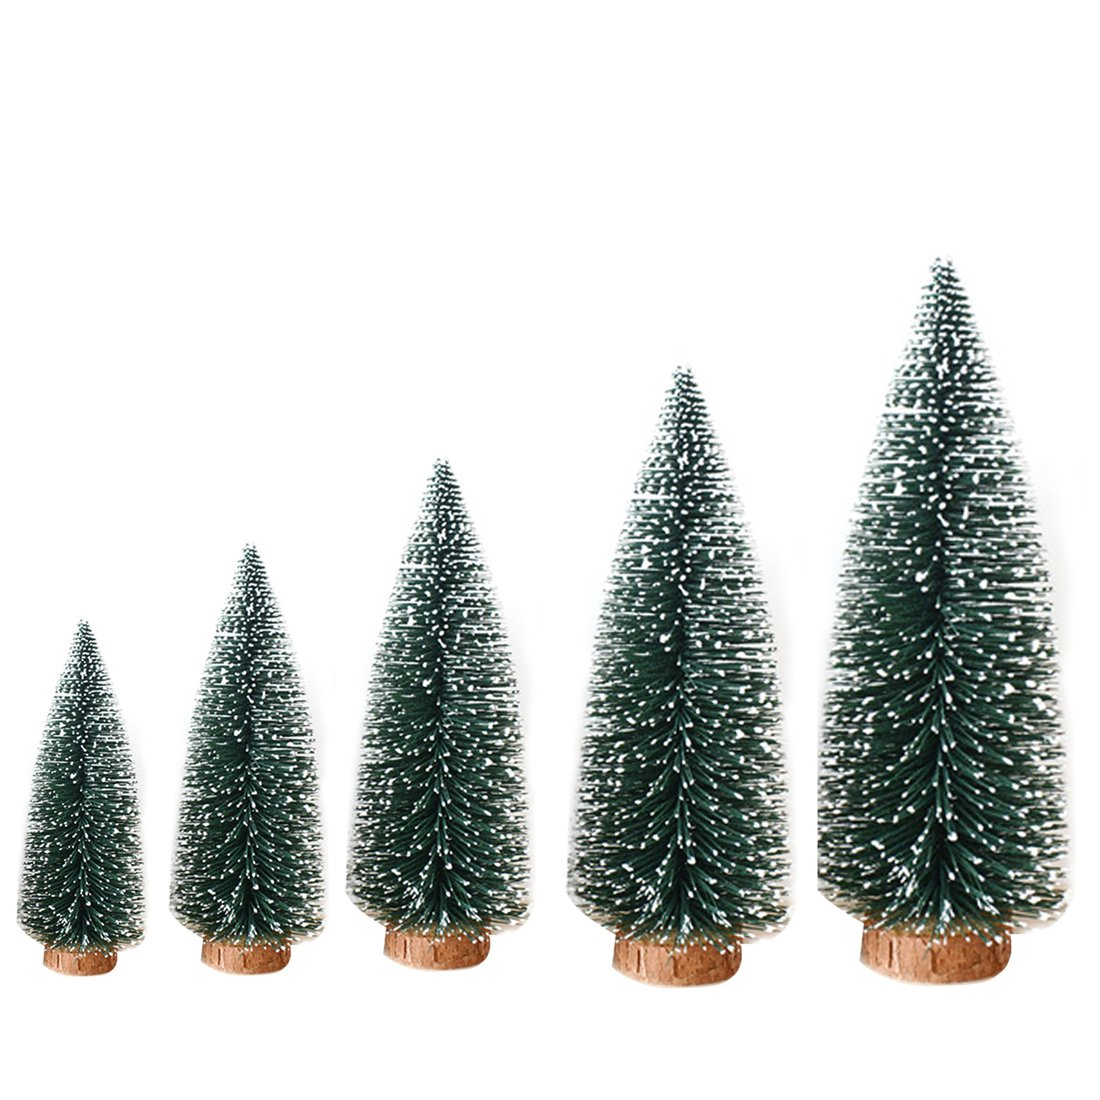 1pcs Artificial Tabletop Mini Pine Christmas Trees Decorations Festival Miniature Xmas Tree Wood Look Base 5 Size